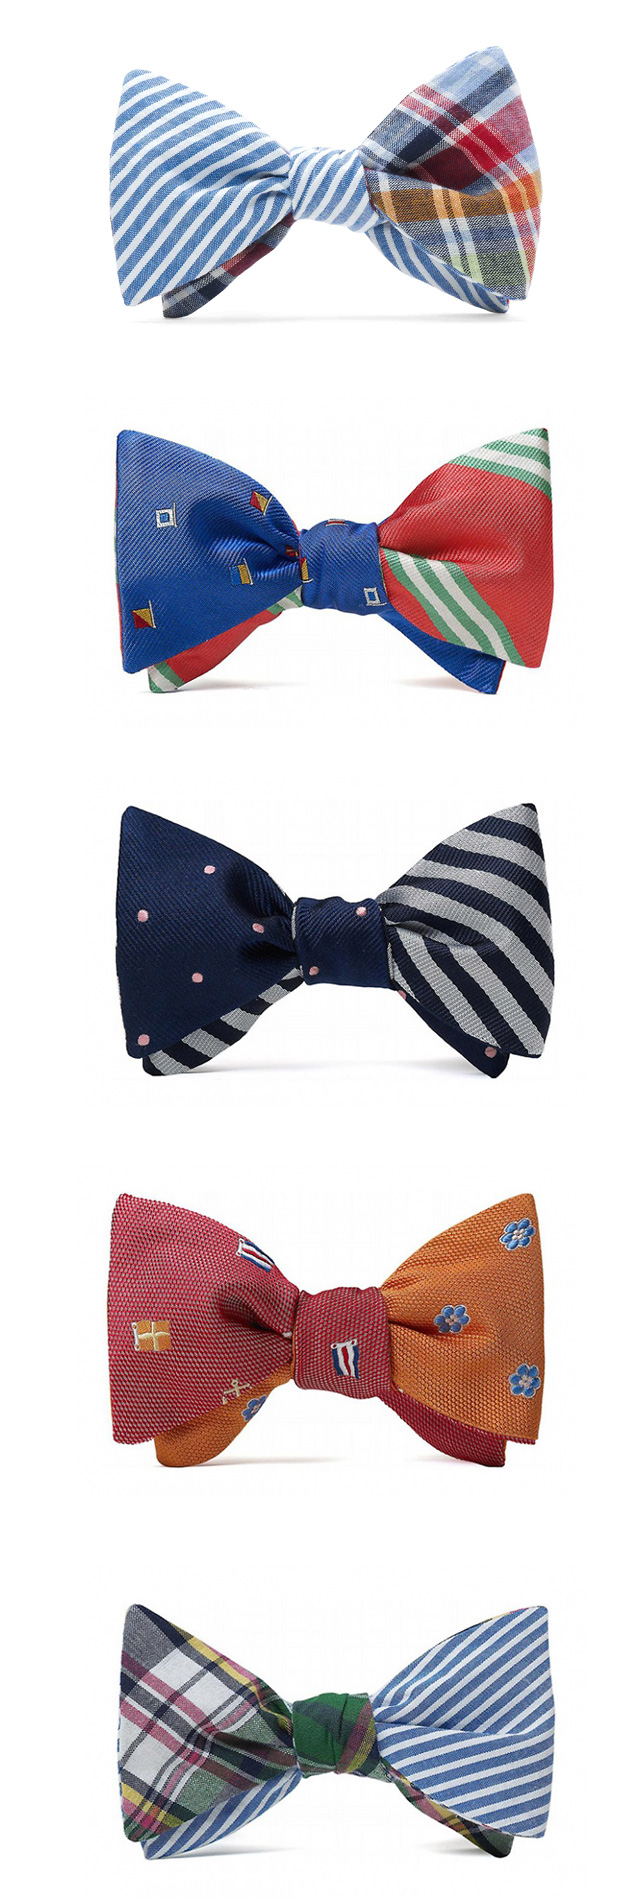 Social Primer for Brooks Brothers Bow SS 2010 Tie Collection